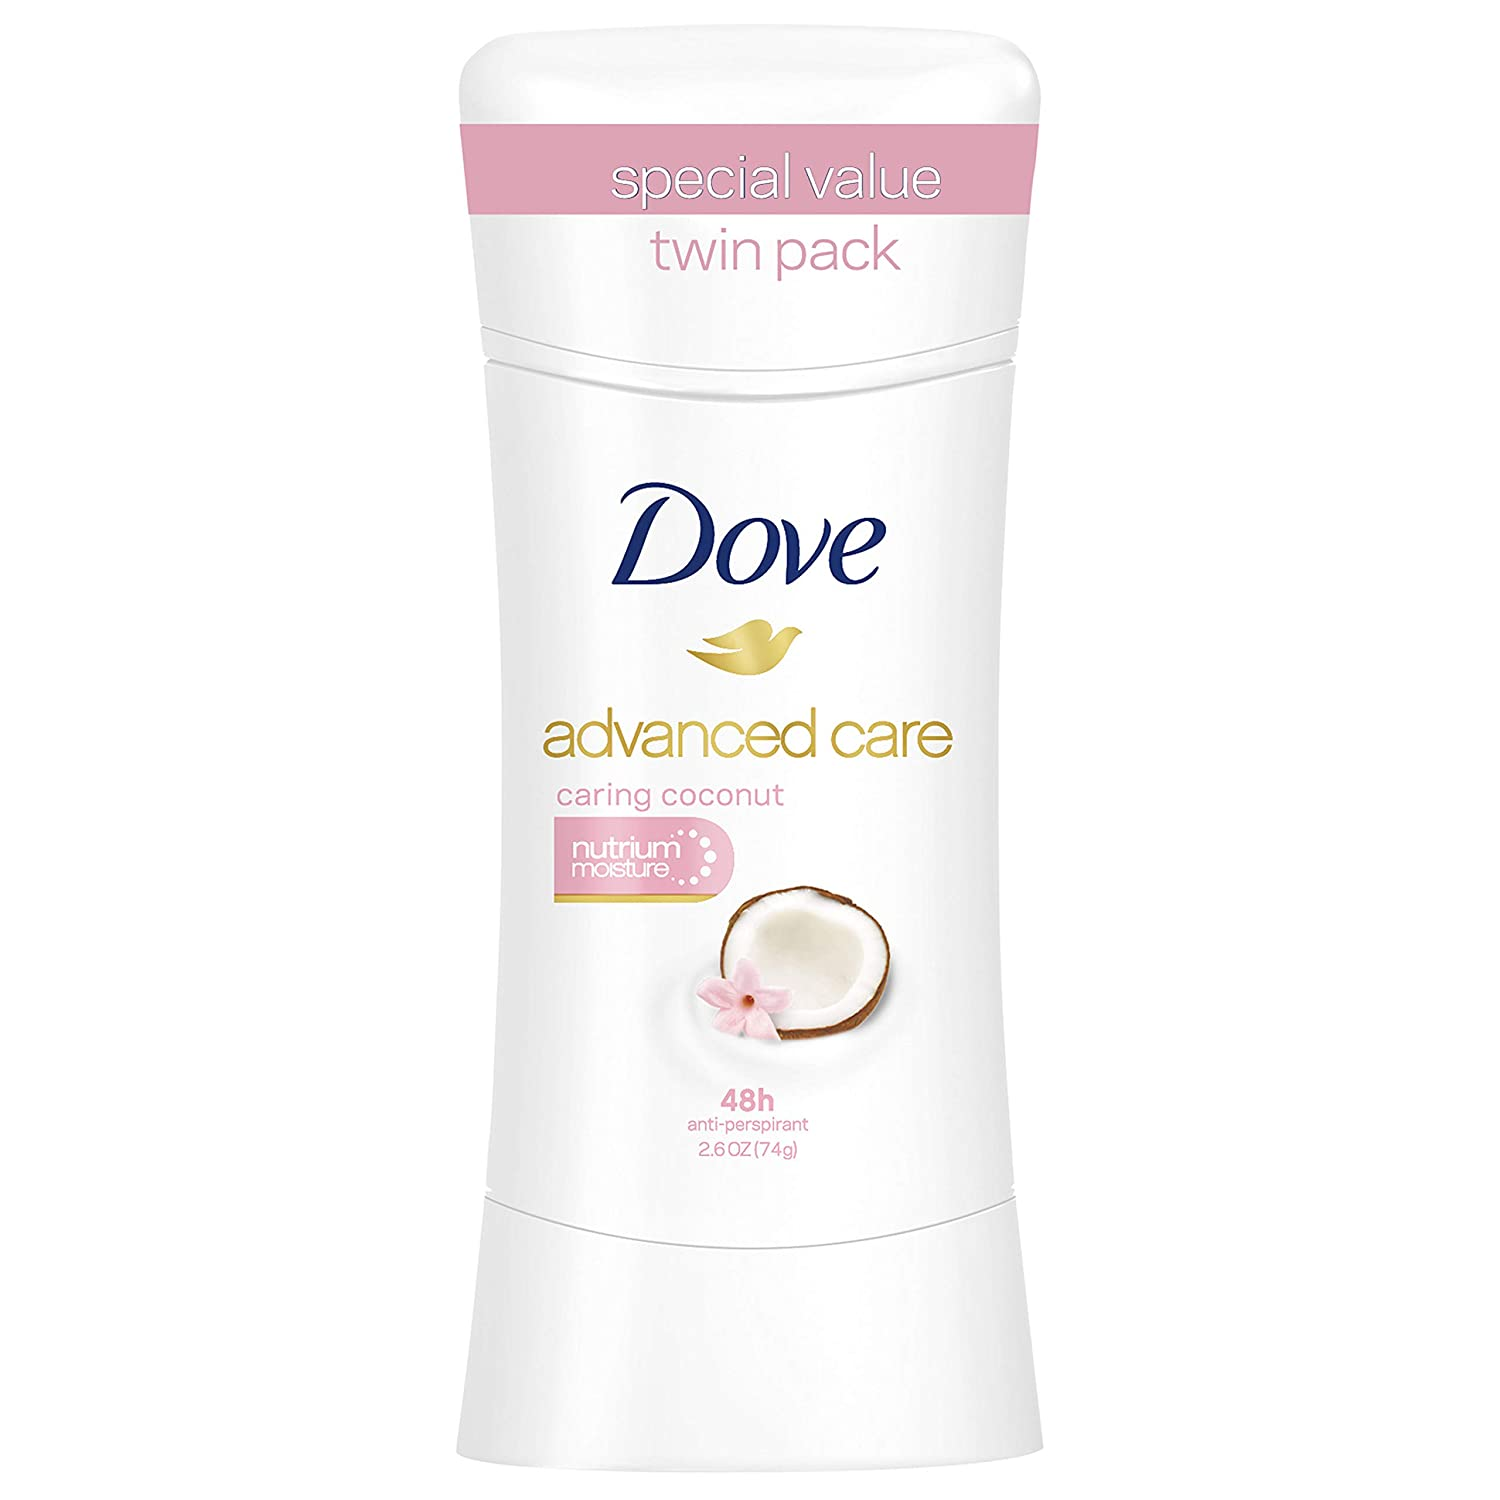 Dove Advanced Care Antiperspirant, Caring Coconut, 2.6 oz, Twin Pack